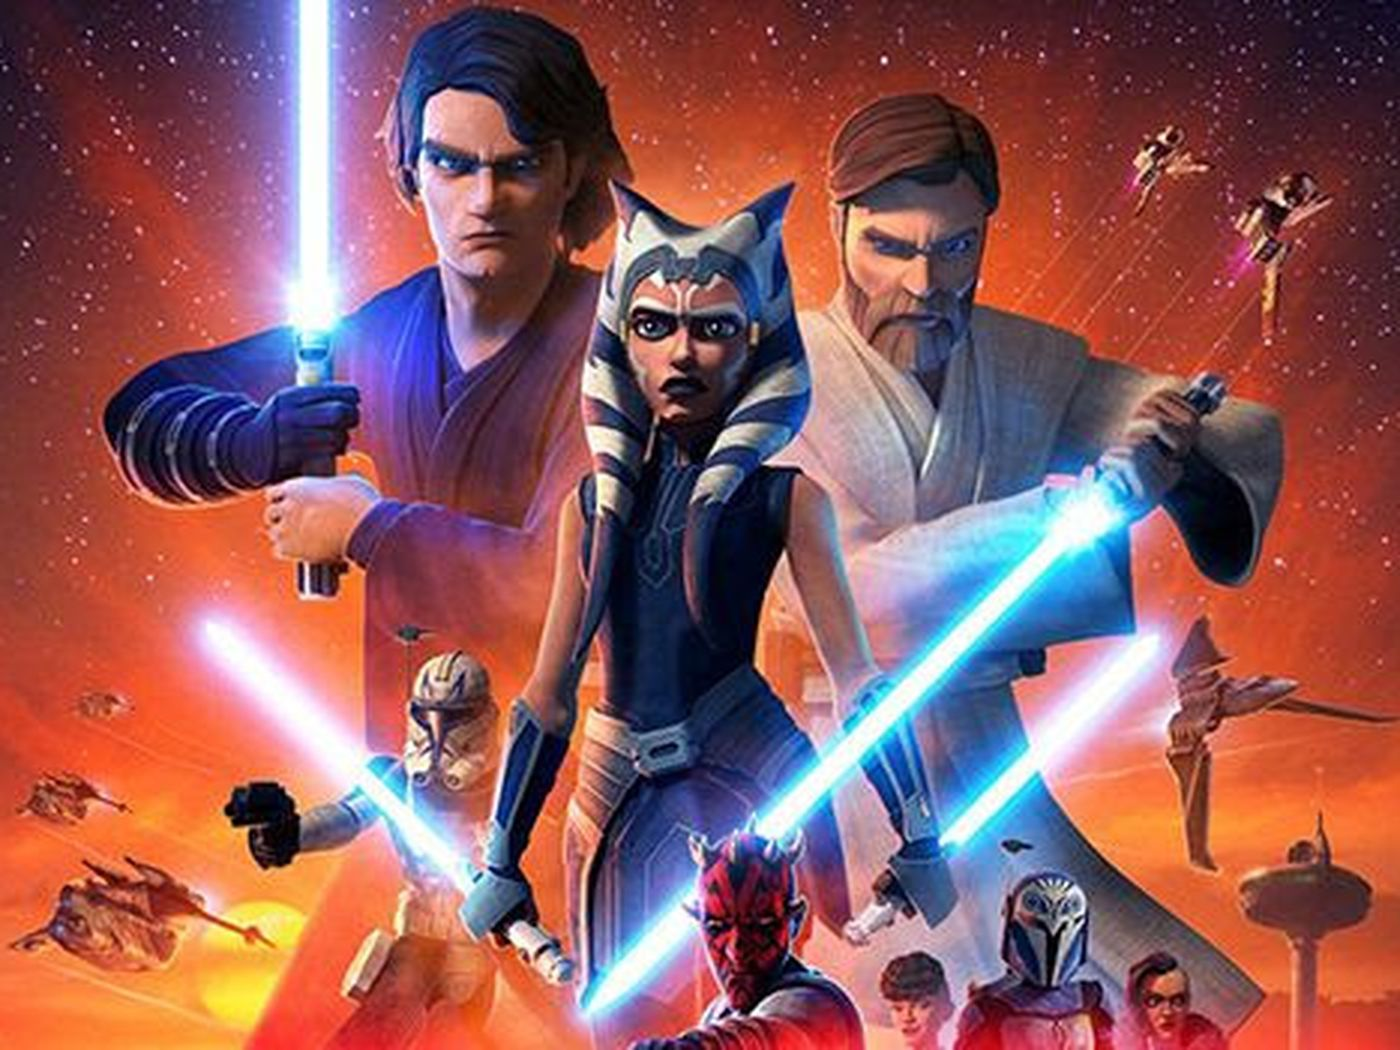 Star Wars The Clone Wars Series Finale Ahsoka S Escapes Darth Vader Appears Deseret News